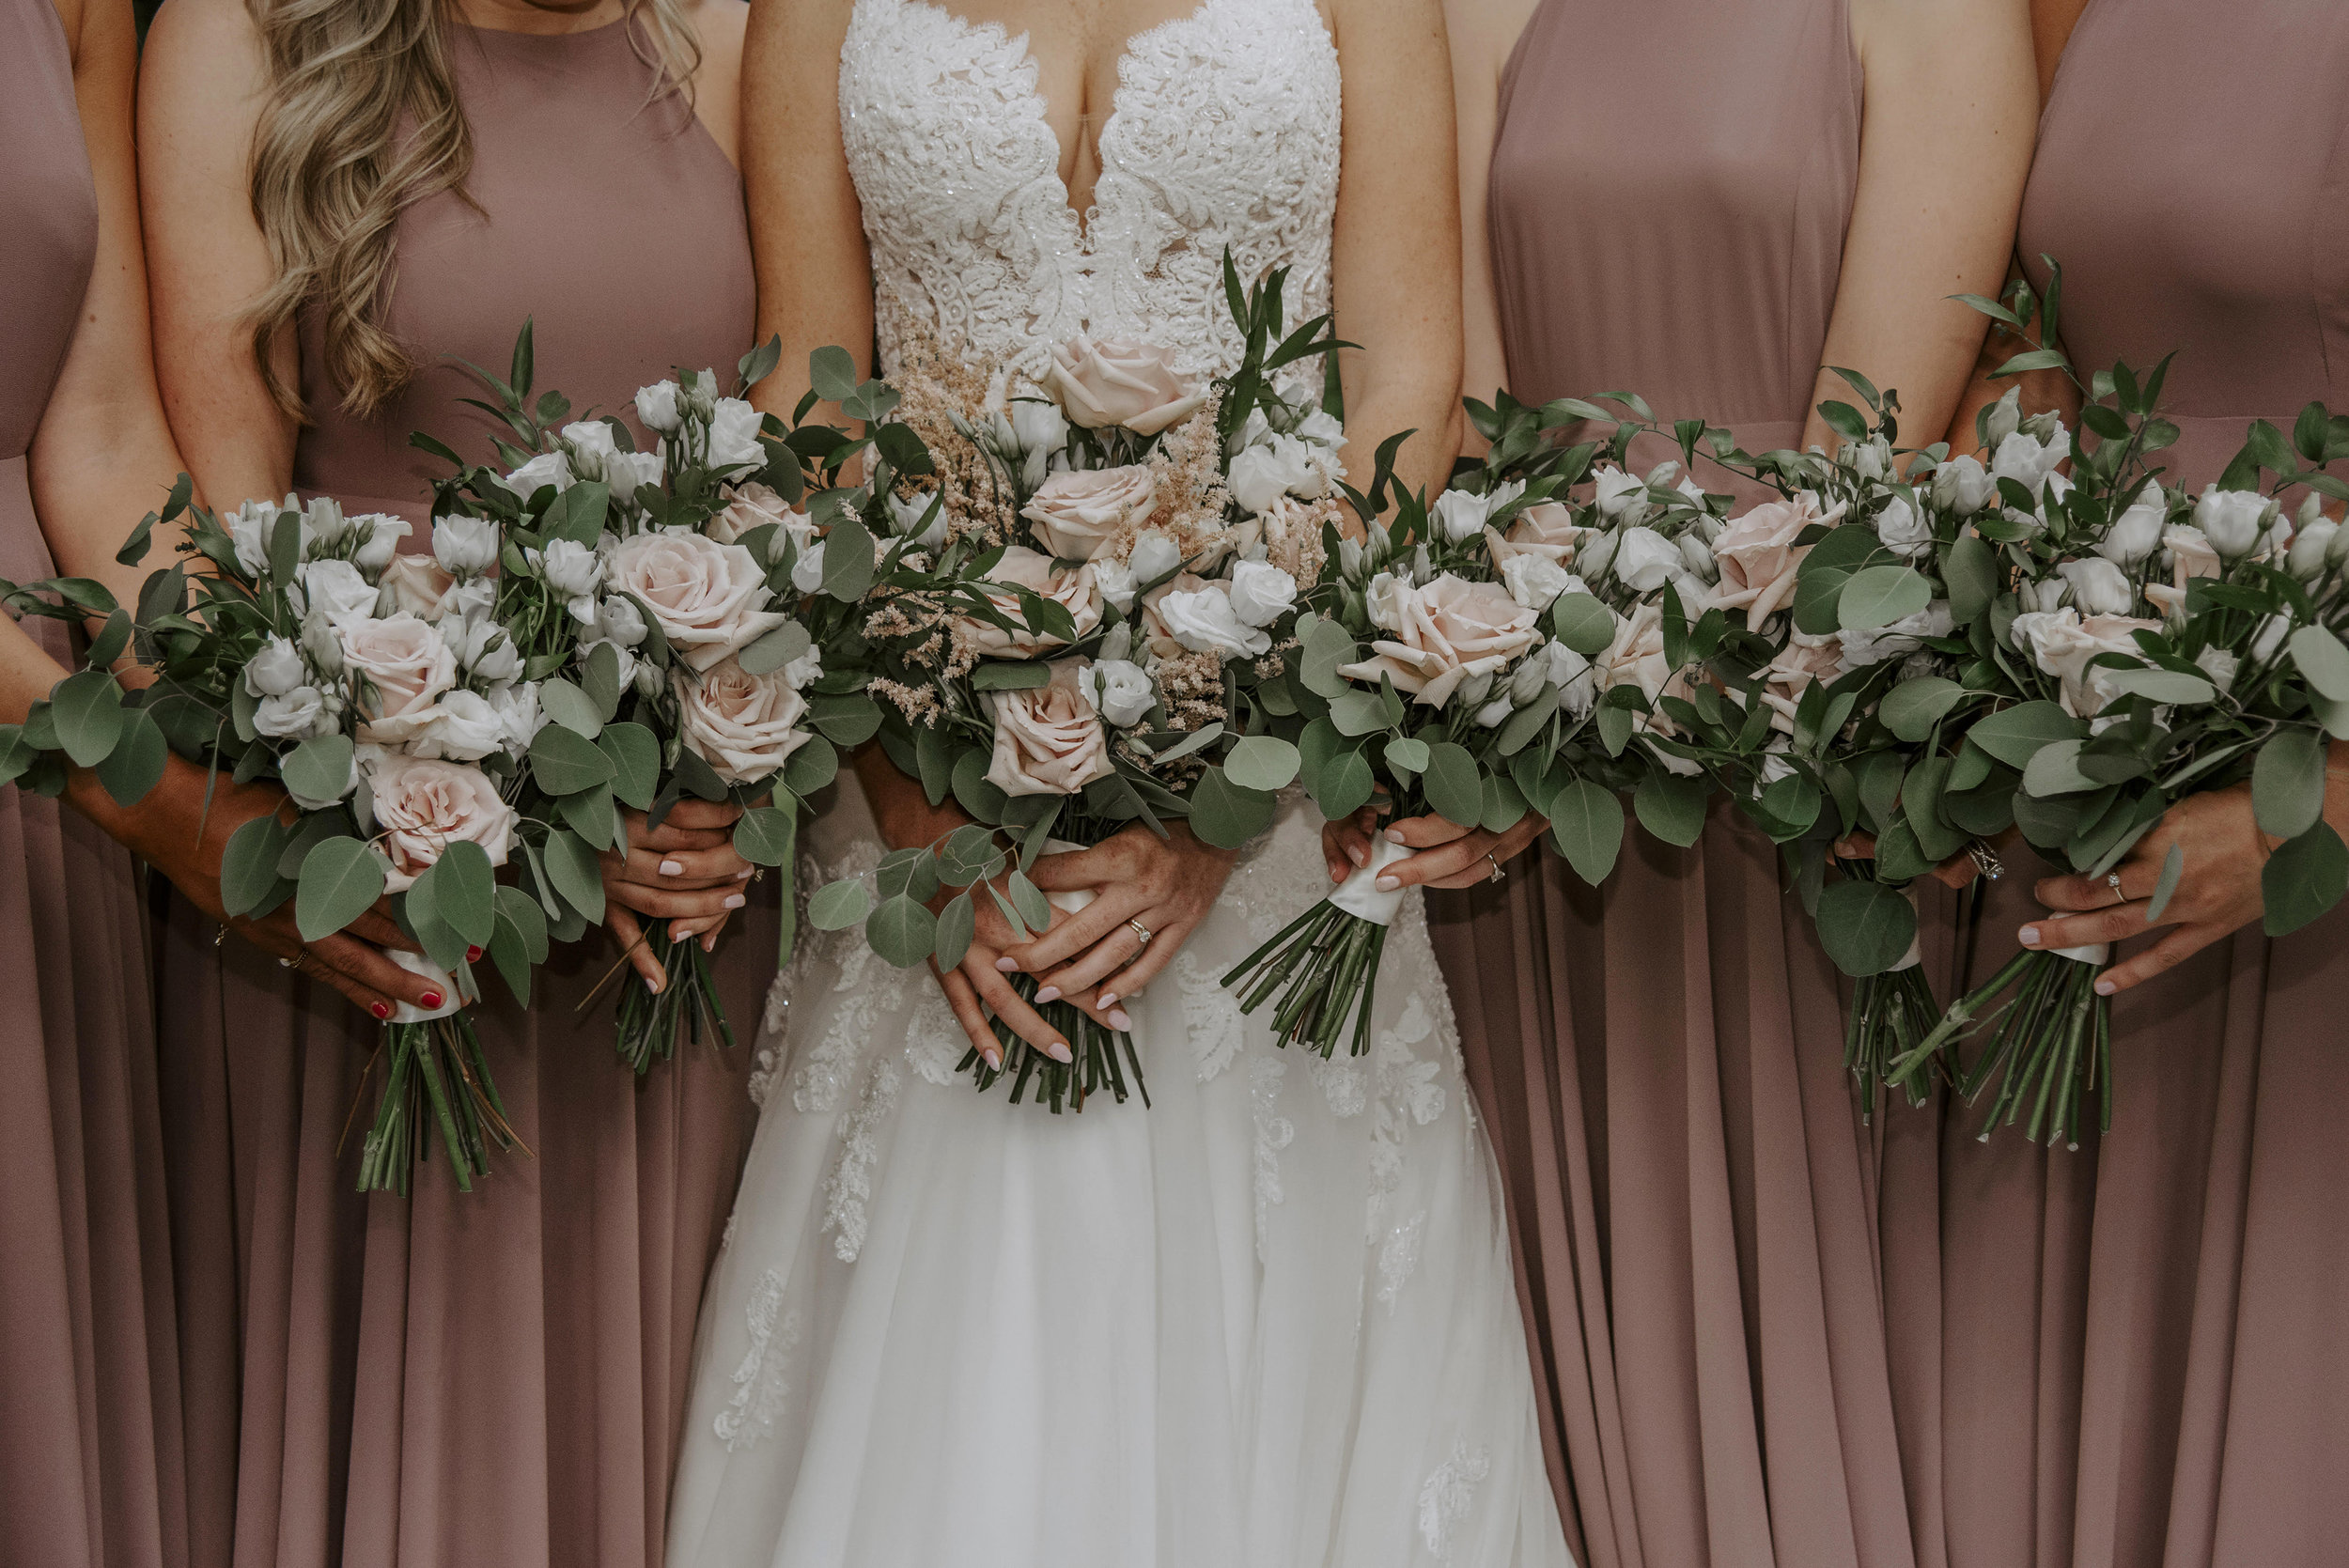 Bouquet Inspiration: 8 Bridal Party Bouquet Pictures Sure to Get You in the Mood For Wedding Season